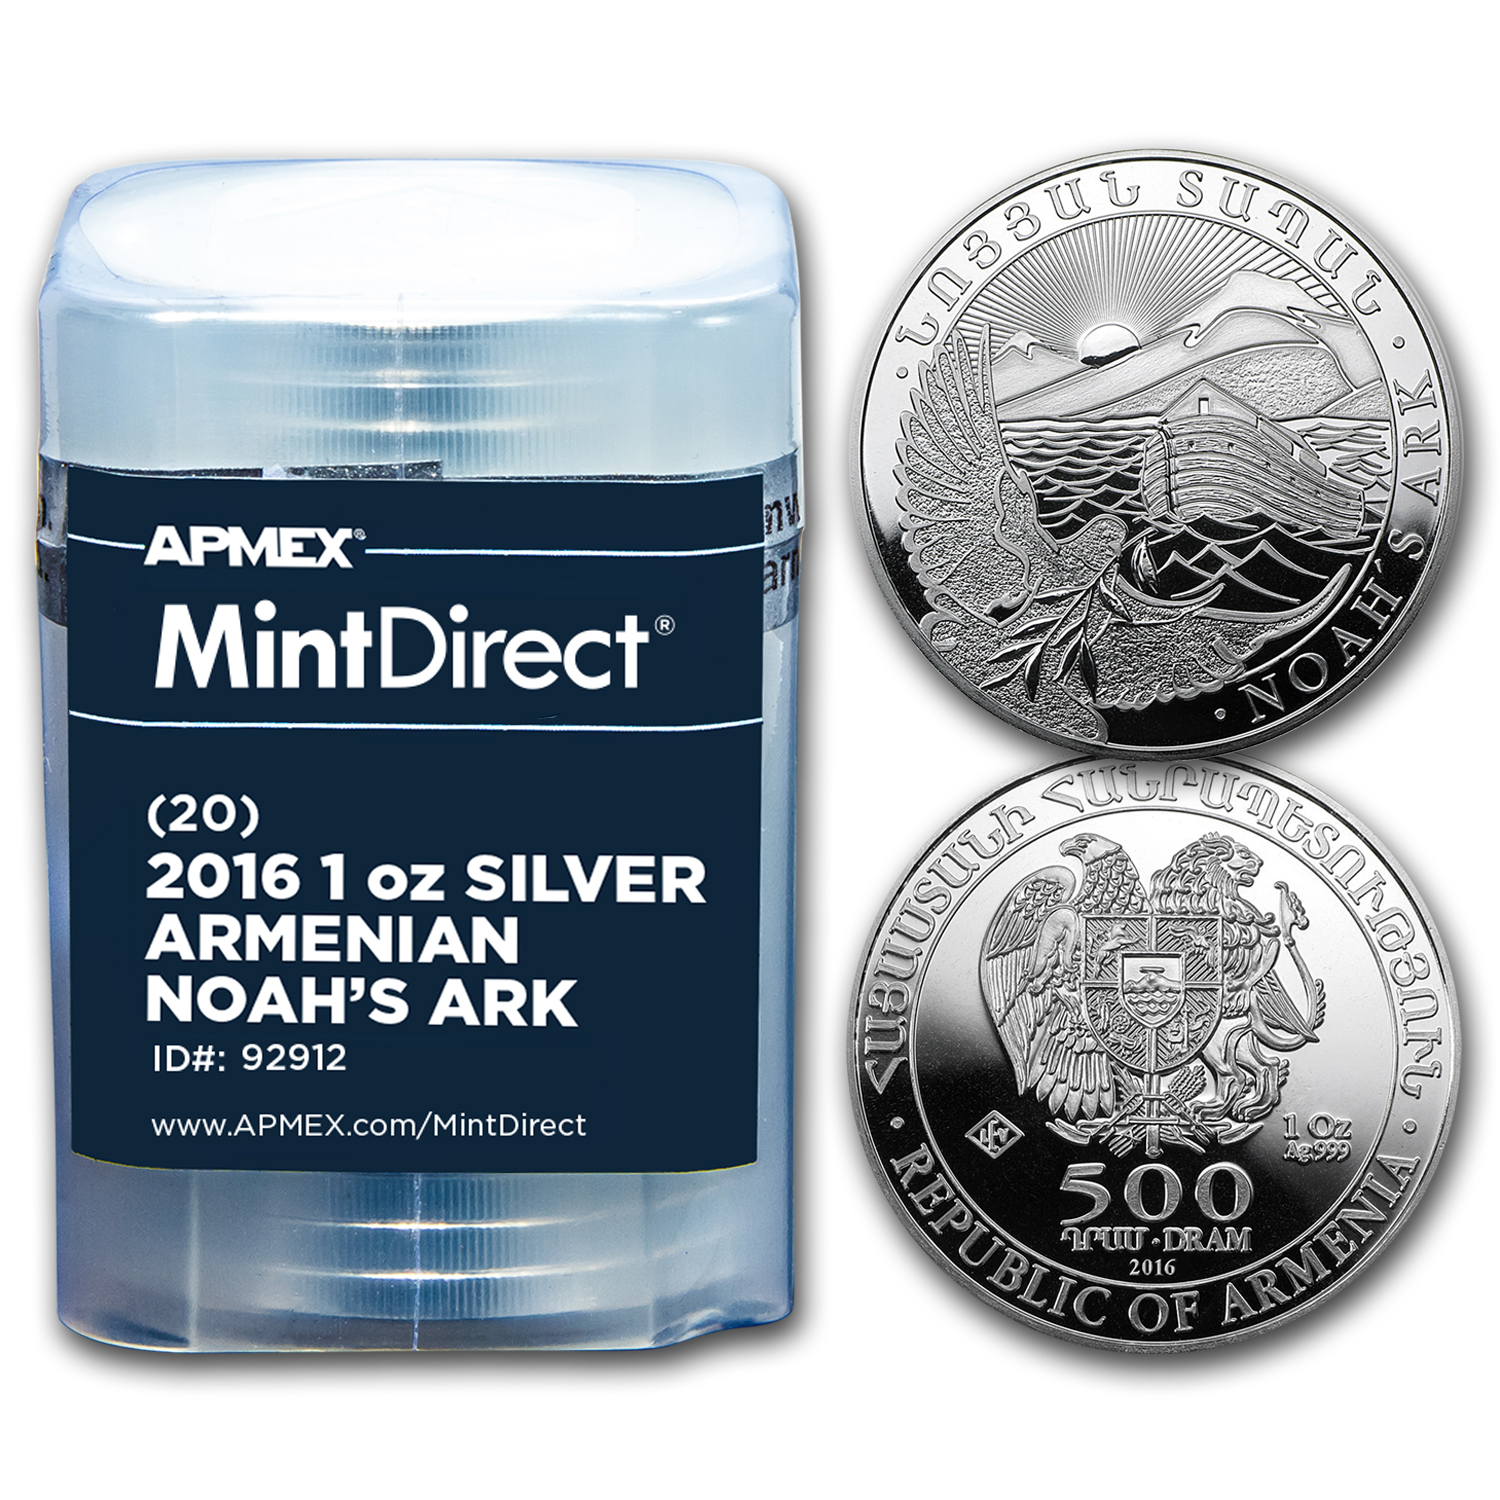 2016 Armenia 1 oz Silver Noah's Ark (20-Coin MintDirect® Tube)